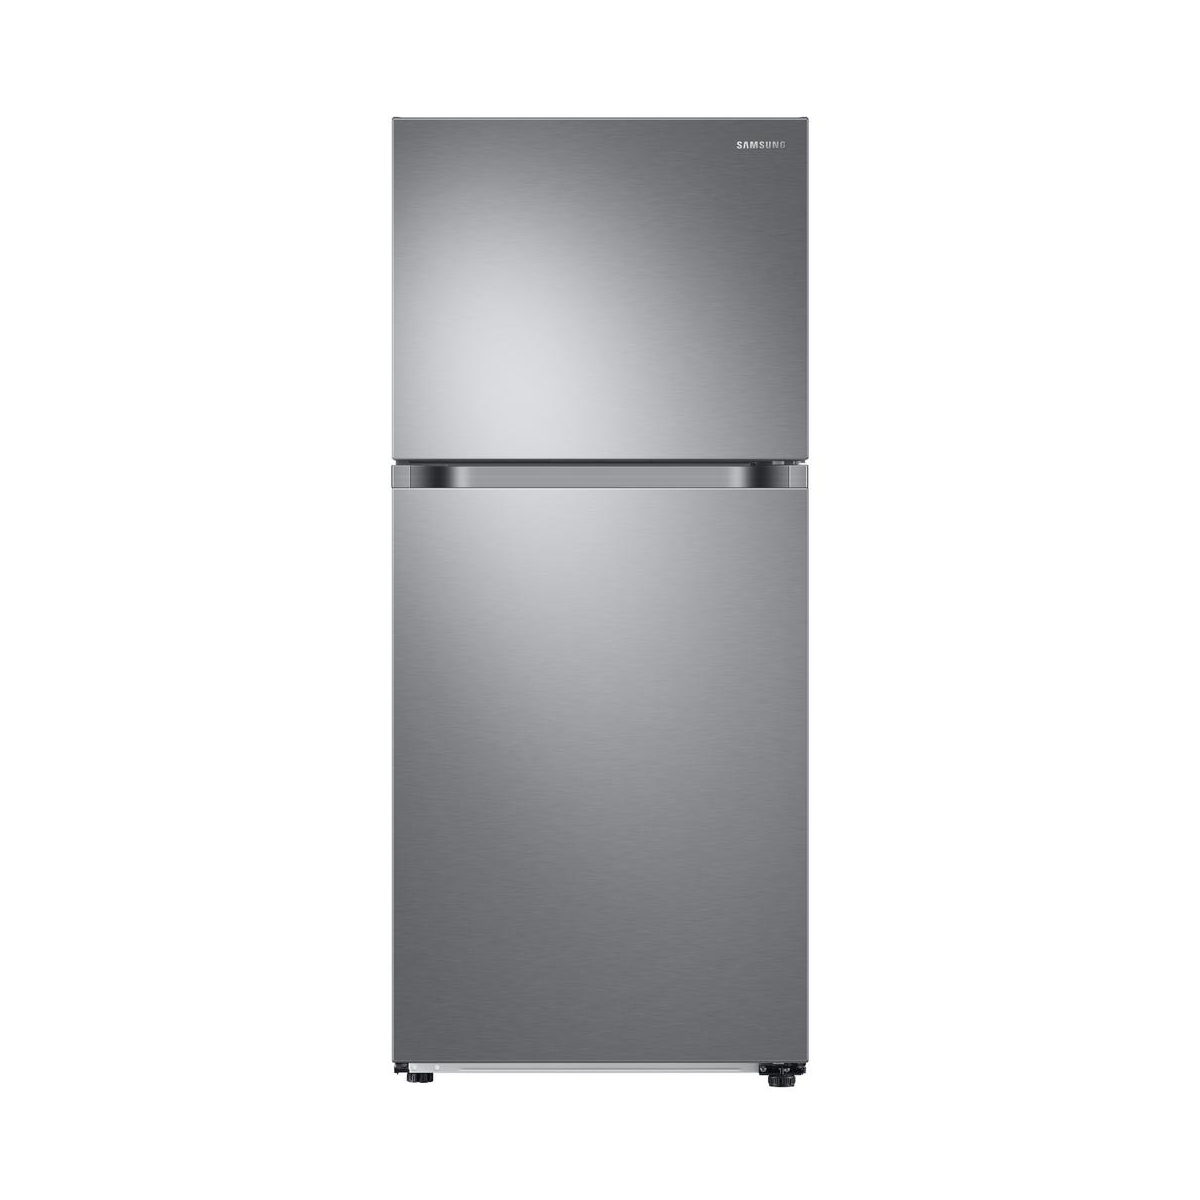 10 Small Refrigerators for $1,000 or Less | Kitchn